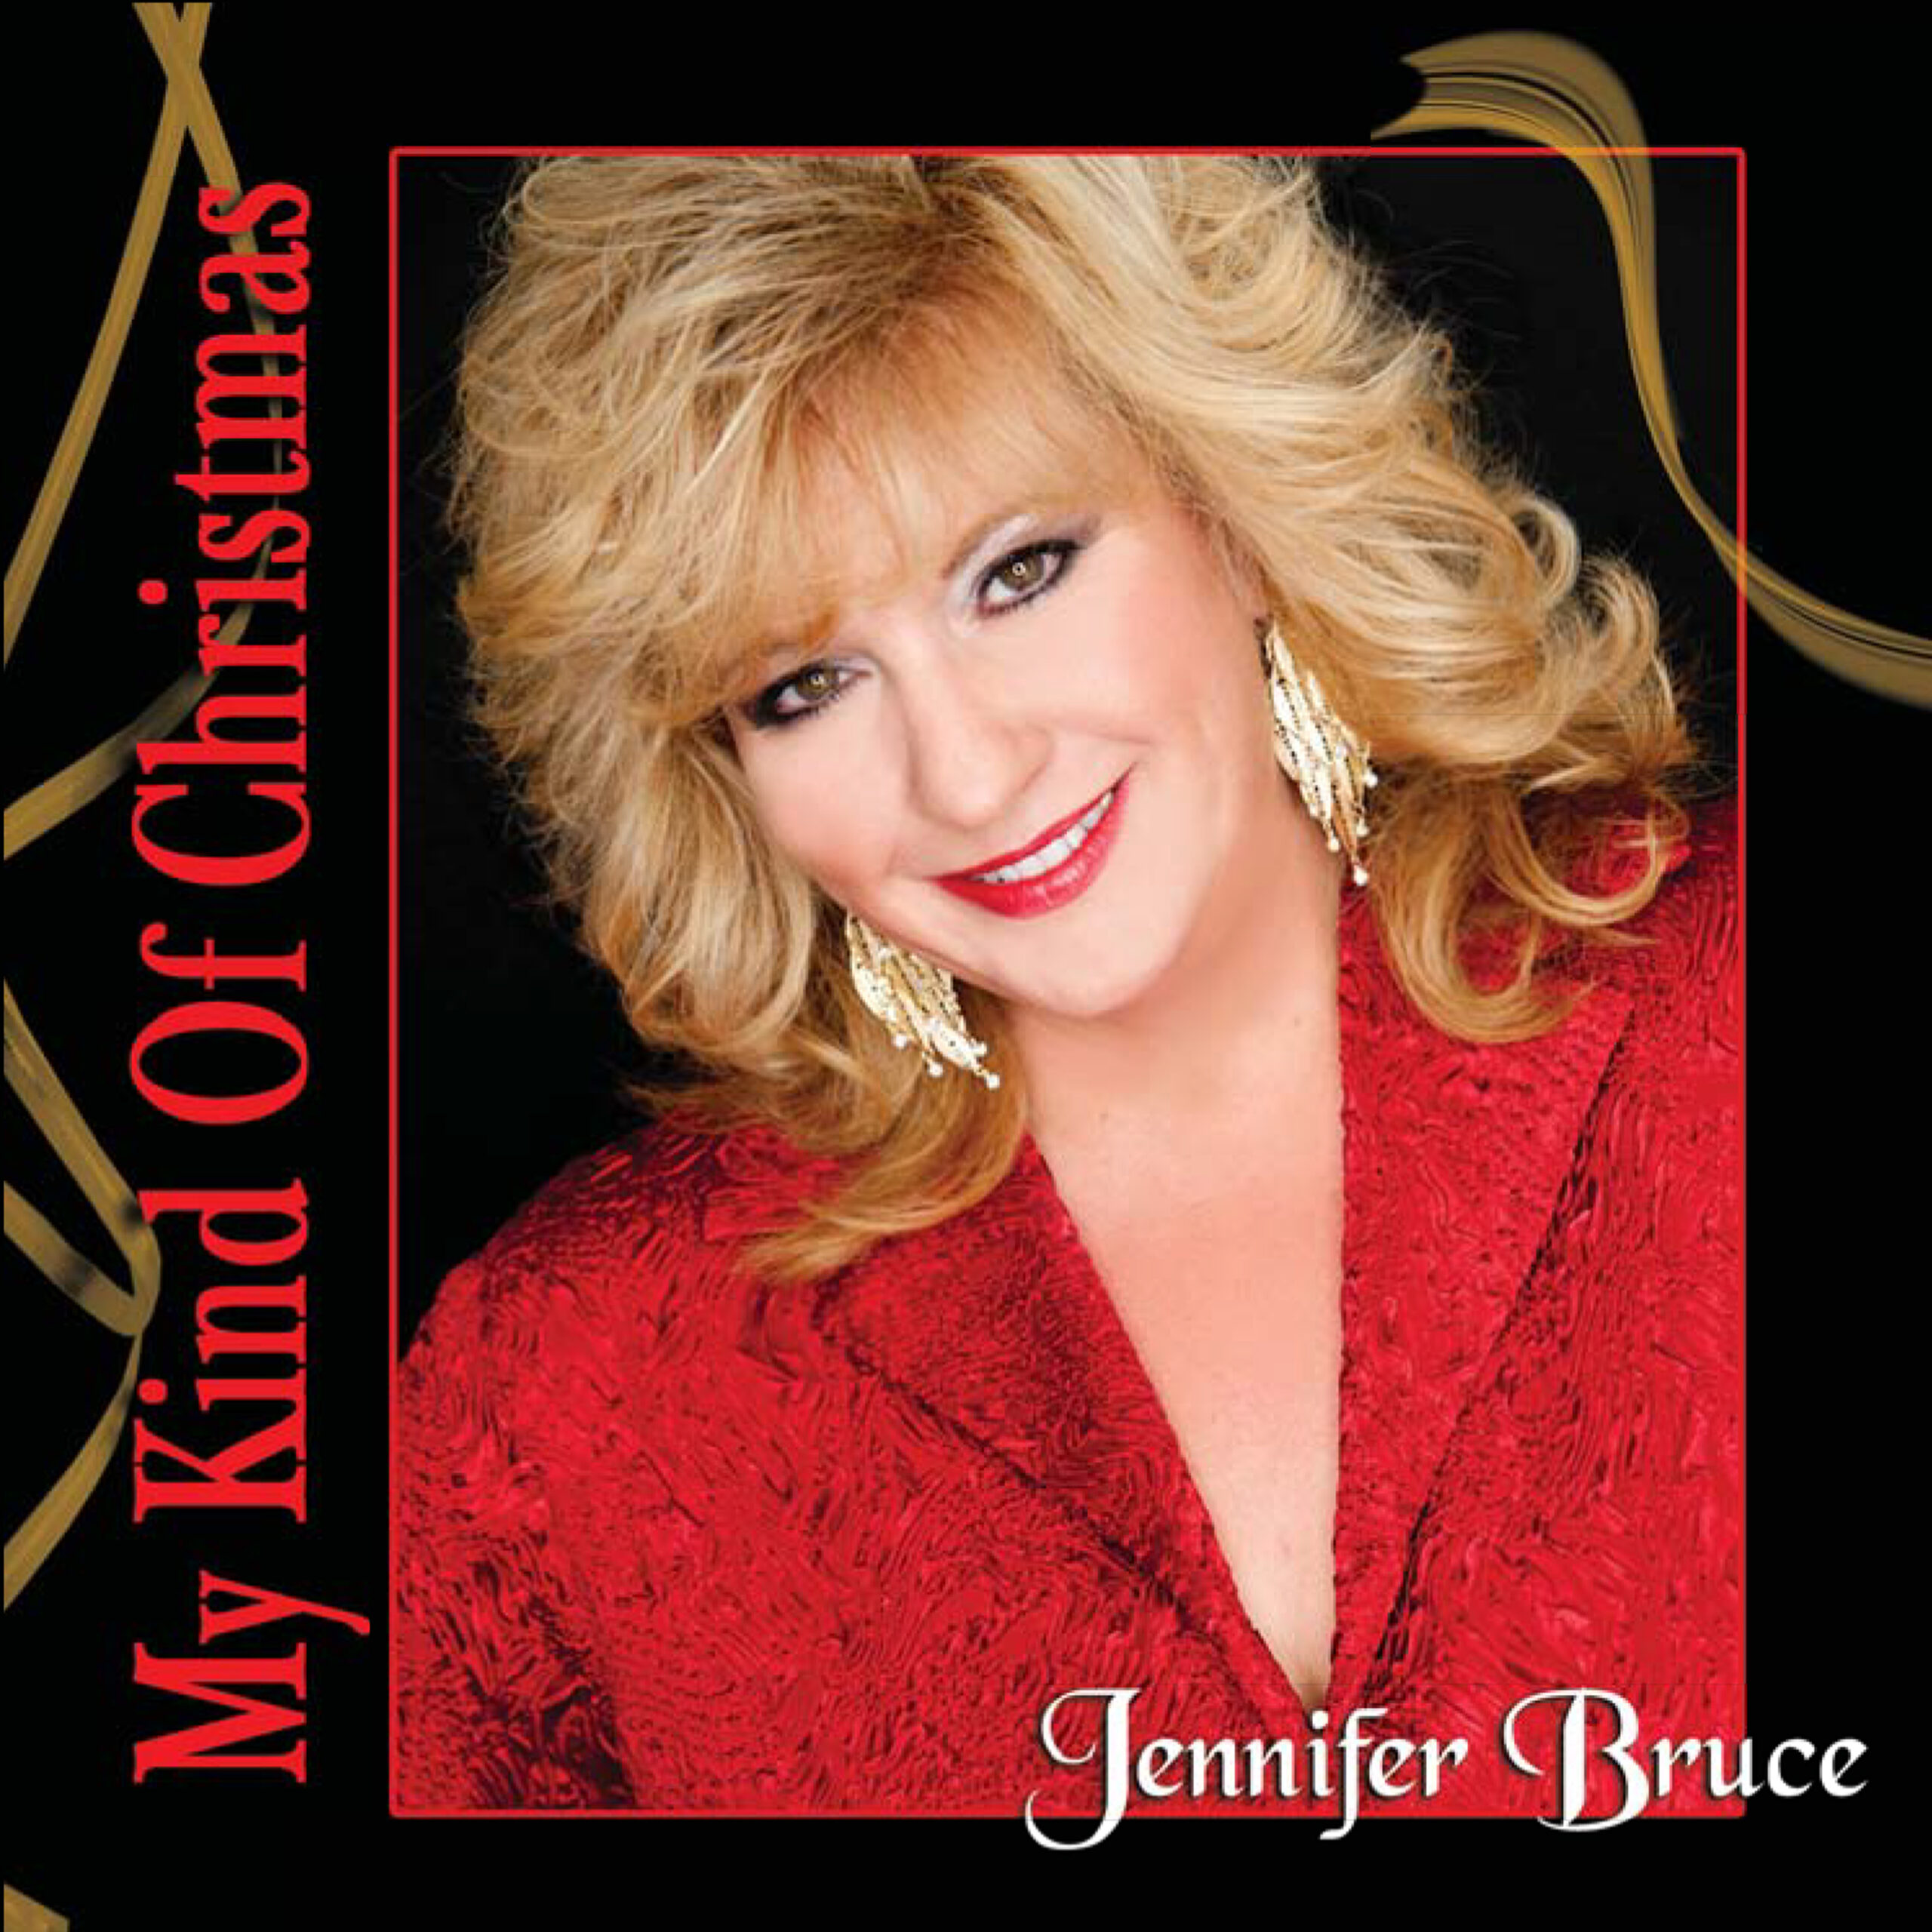 Jennifer Bruce - My Kind of Christmas CD